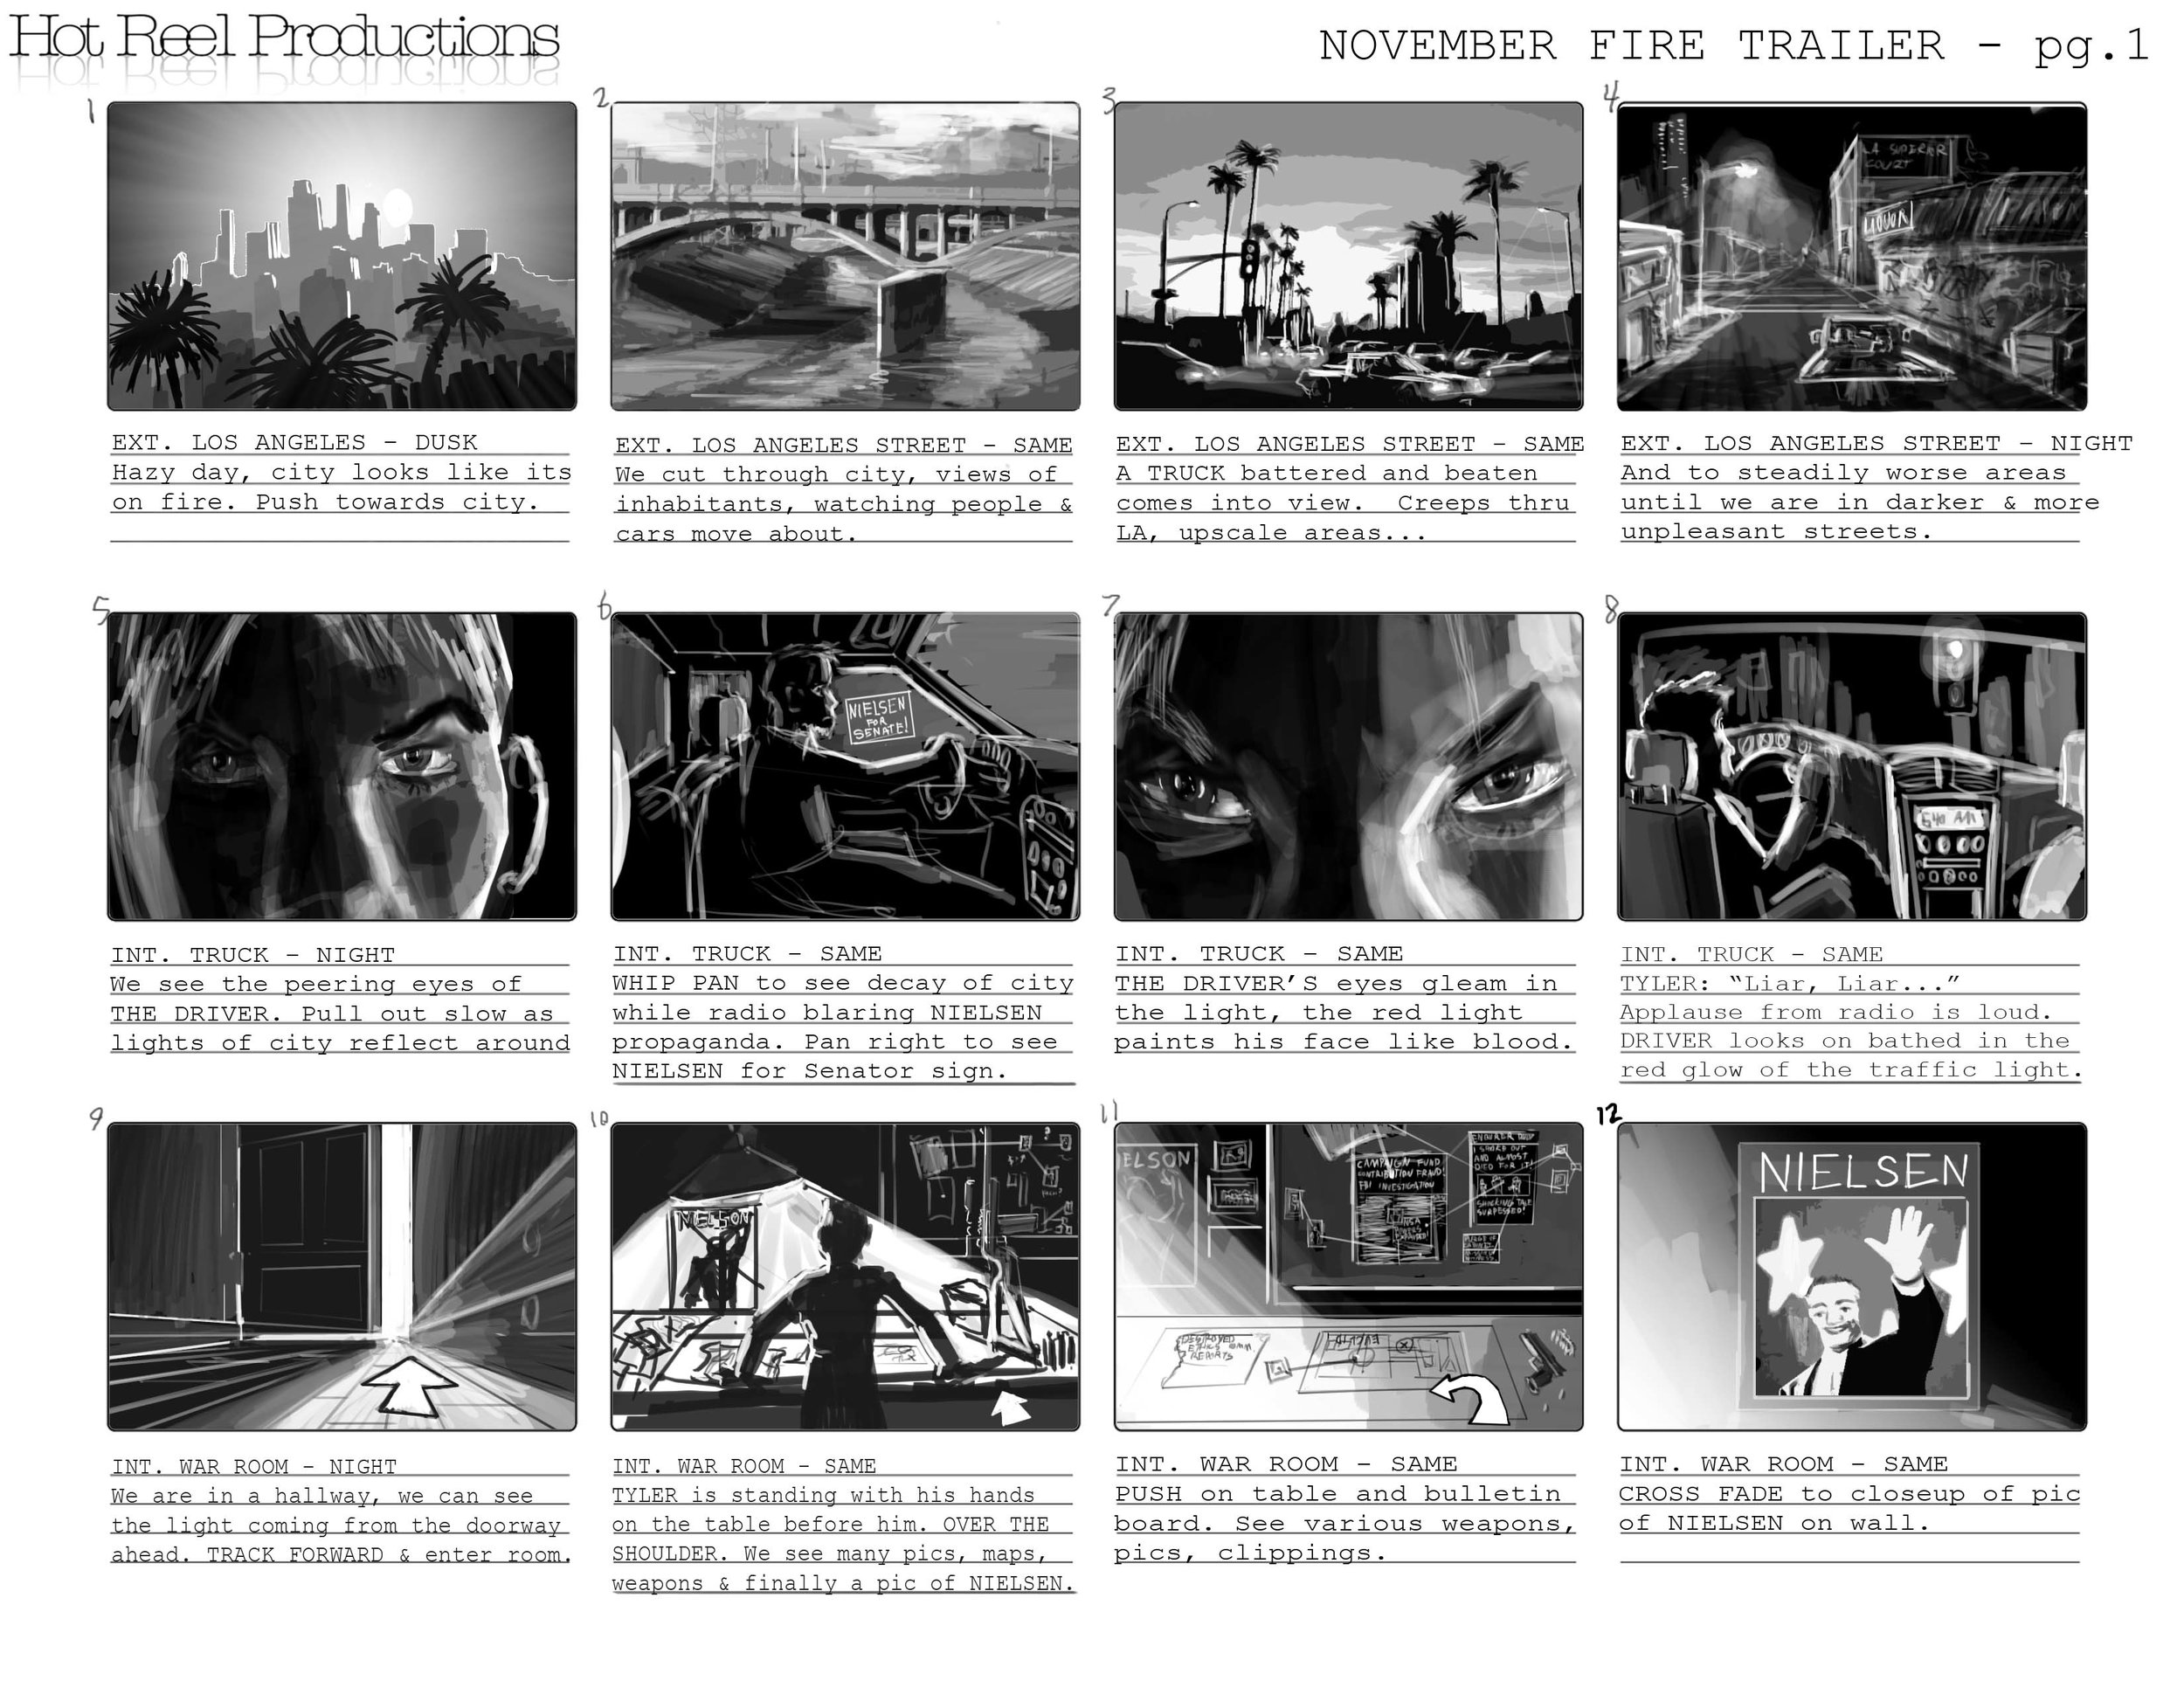 A storyboard for a trailer for November Fire. Copyright Hot Reel Productions.